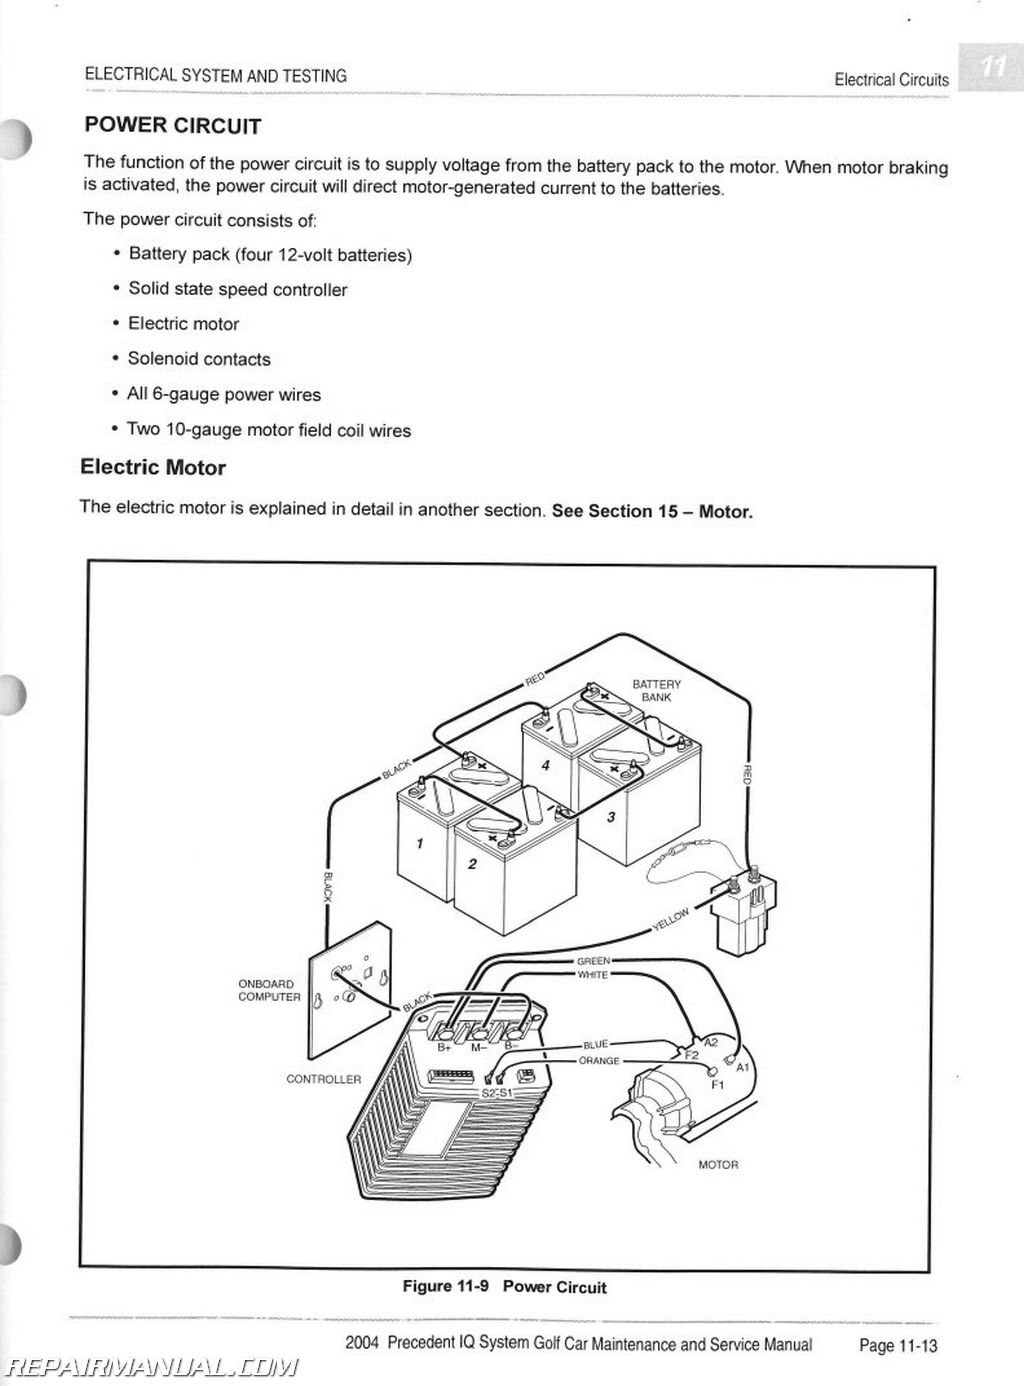 wiring diagram for club car golf cart 98 f150 4x4 carryall 6 1